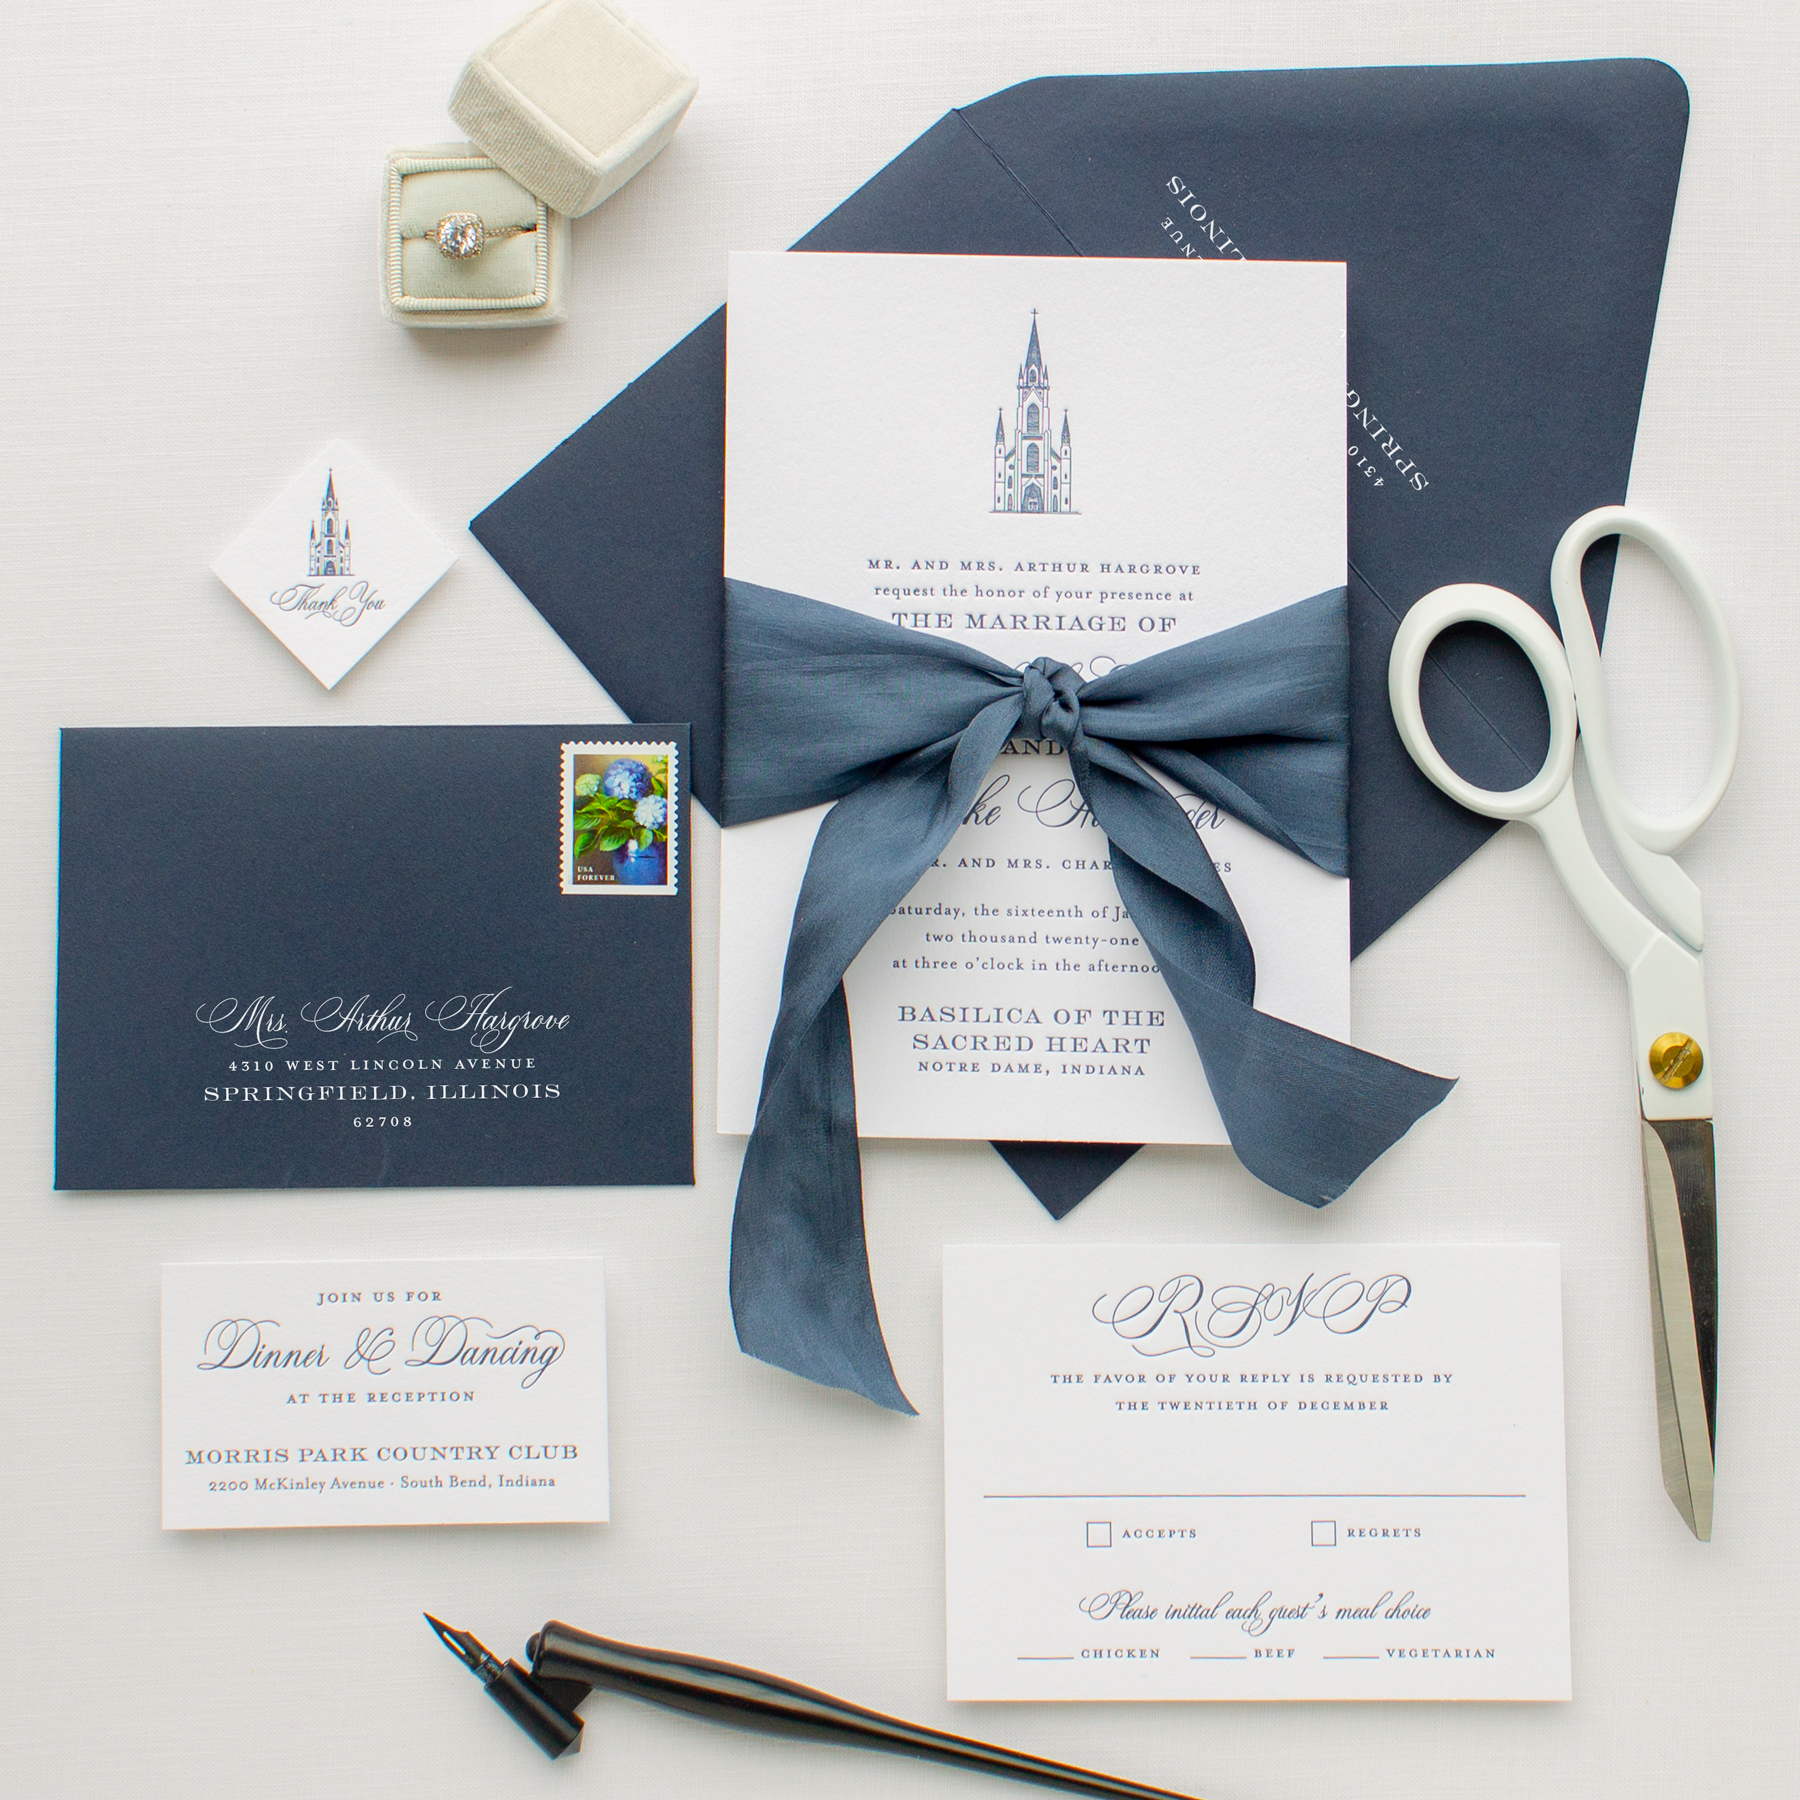 custom letterpress invitations with venue sketch